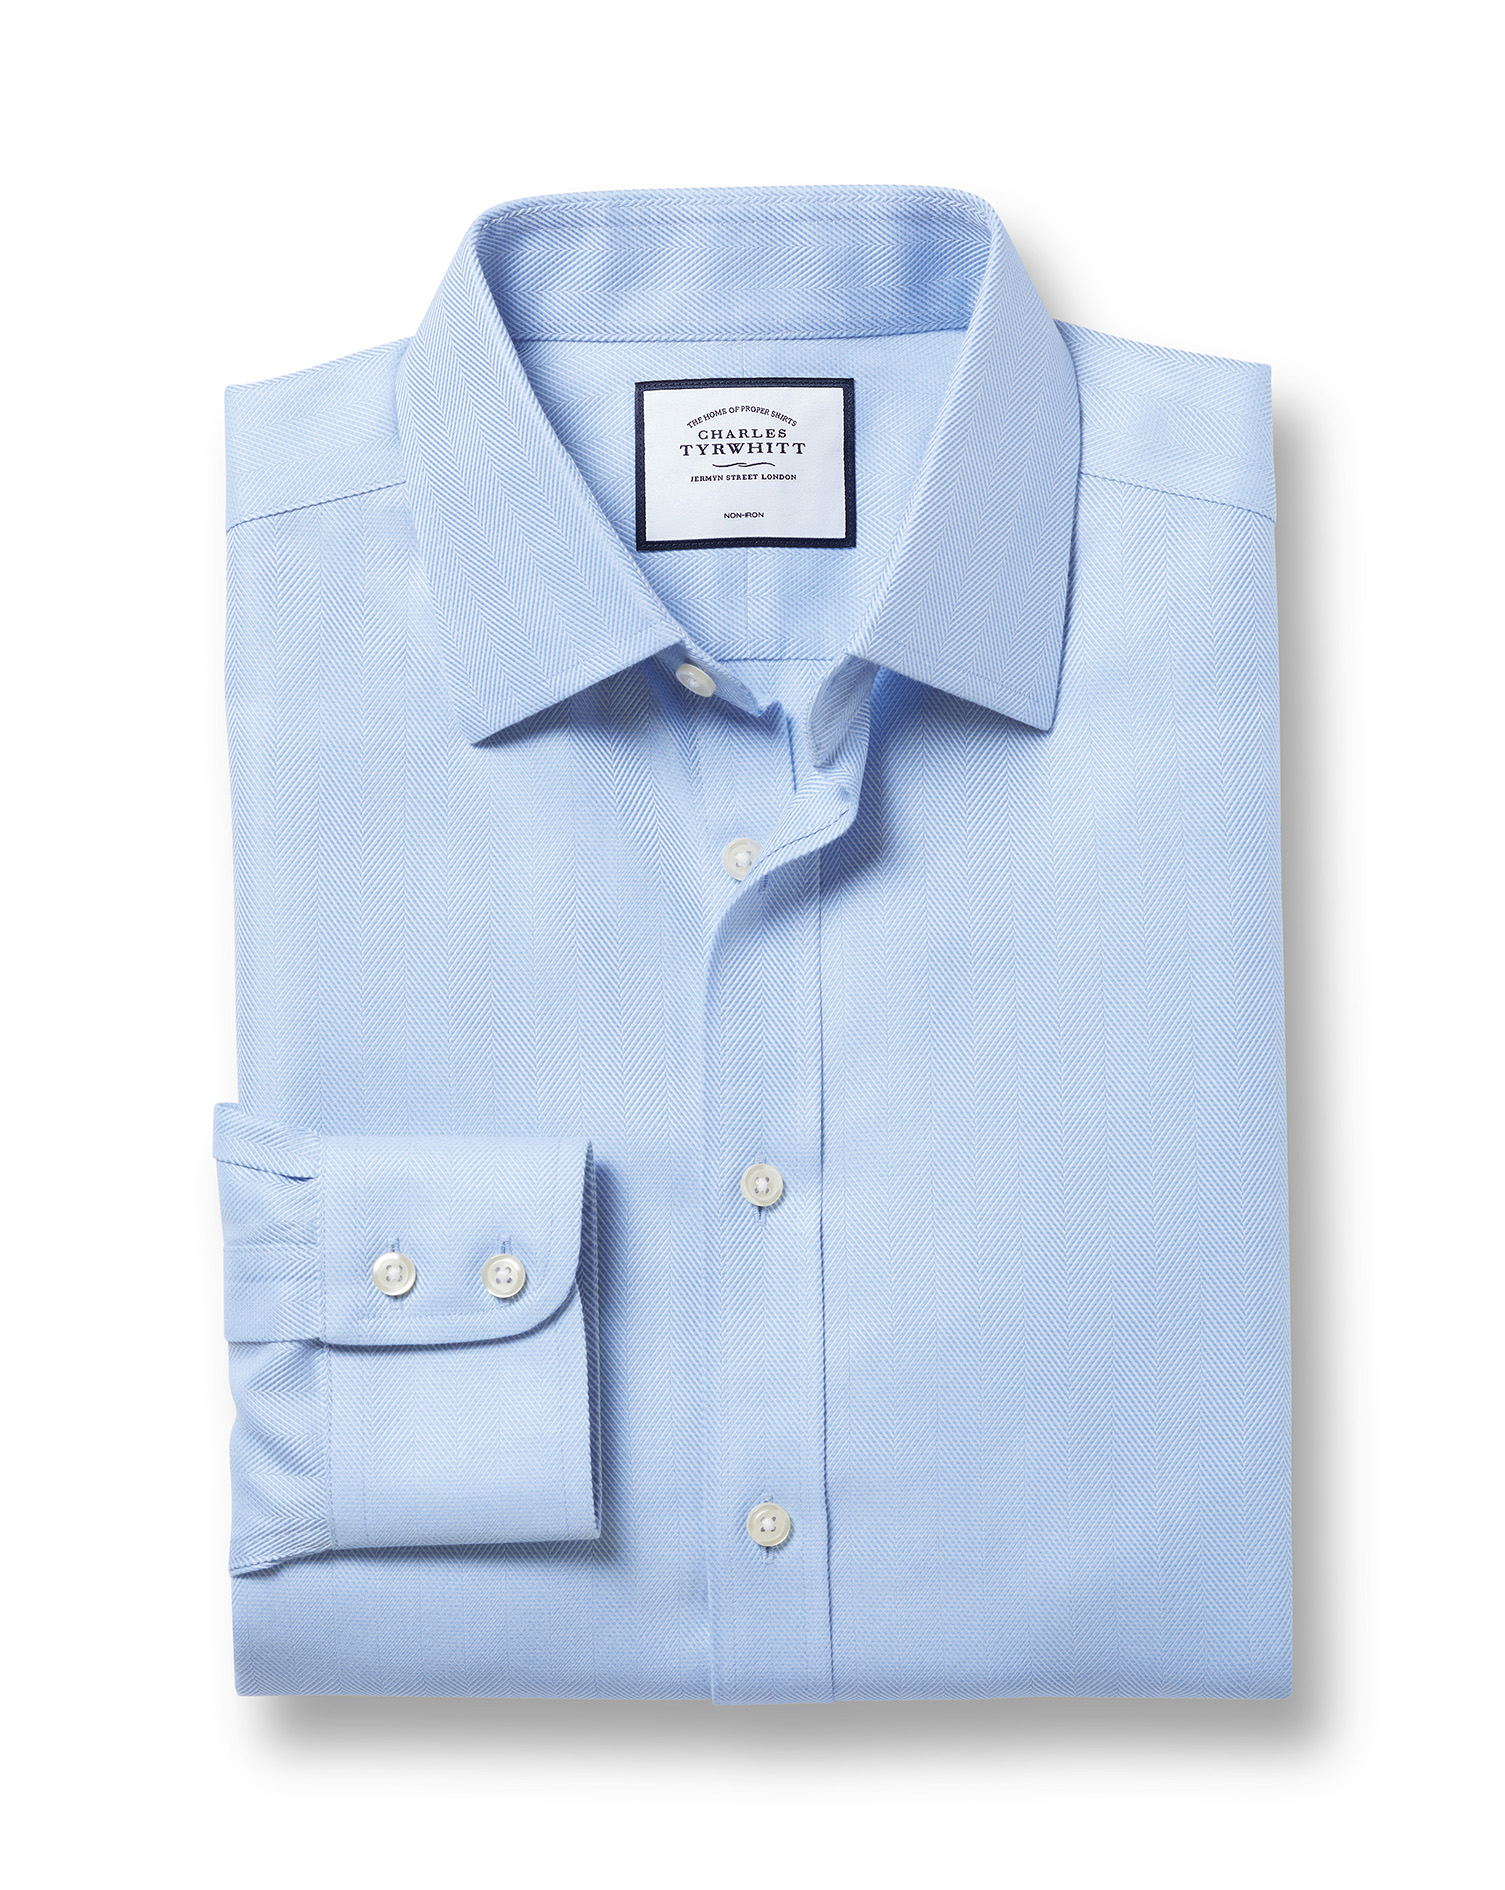 Classic Fit Non-Iron Herringbone Sky Blue Cotton Formal Shirt by Charles Tyrwhitt